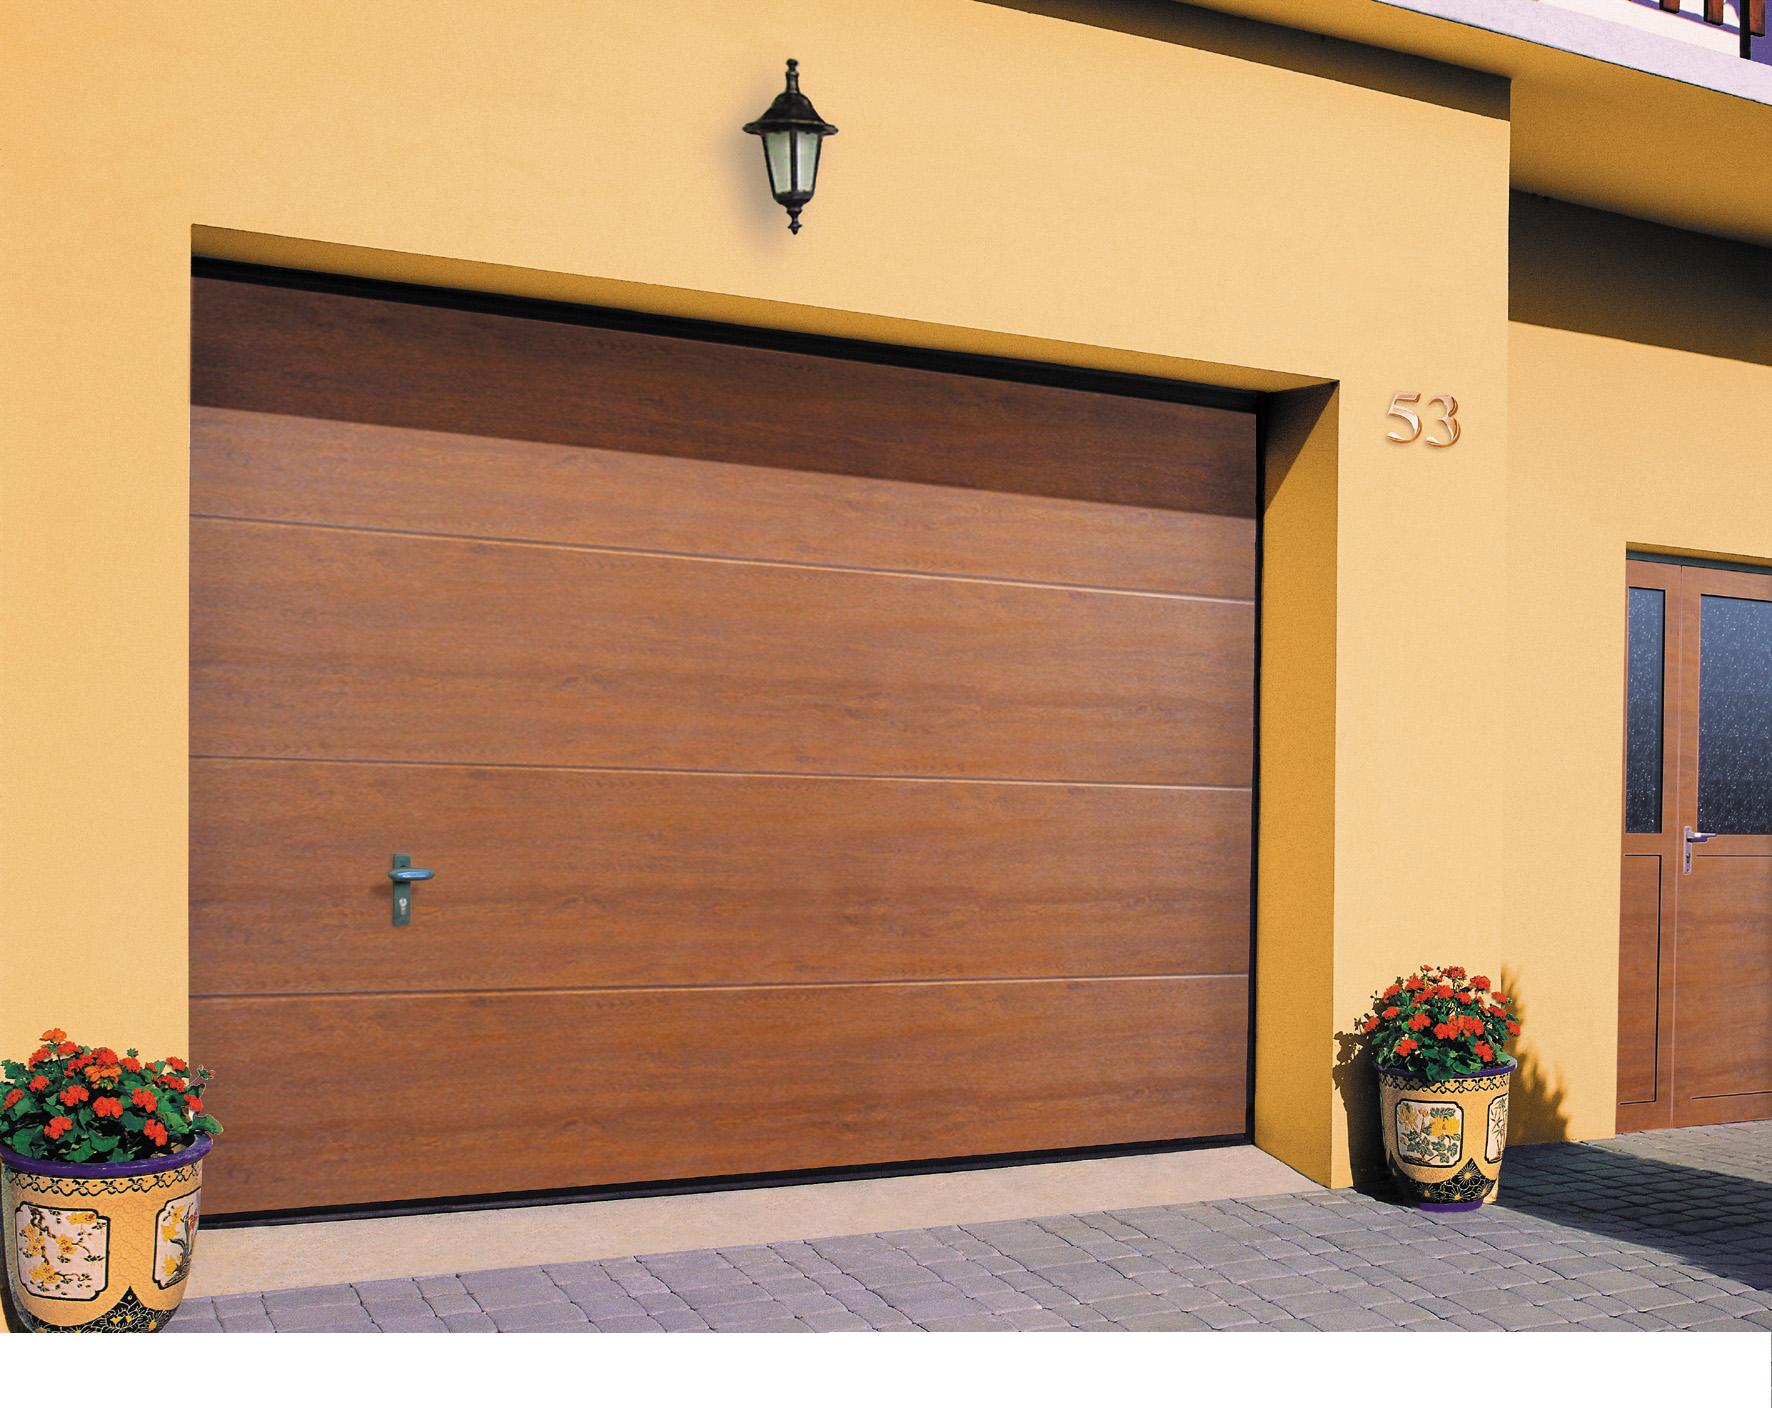 Installation thermique porte garage enroulable brico depot catalogue - Porte de garage enroulable castorama ...